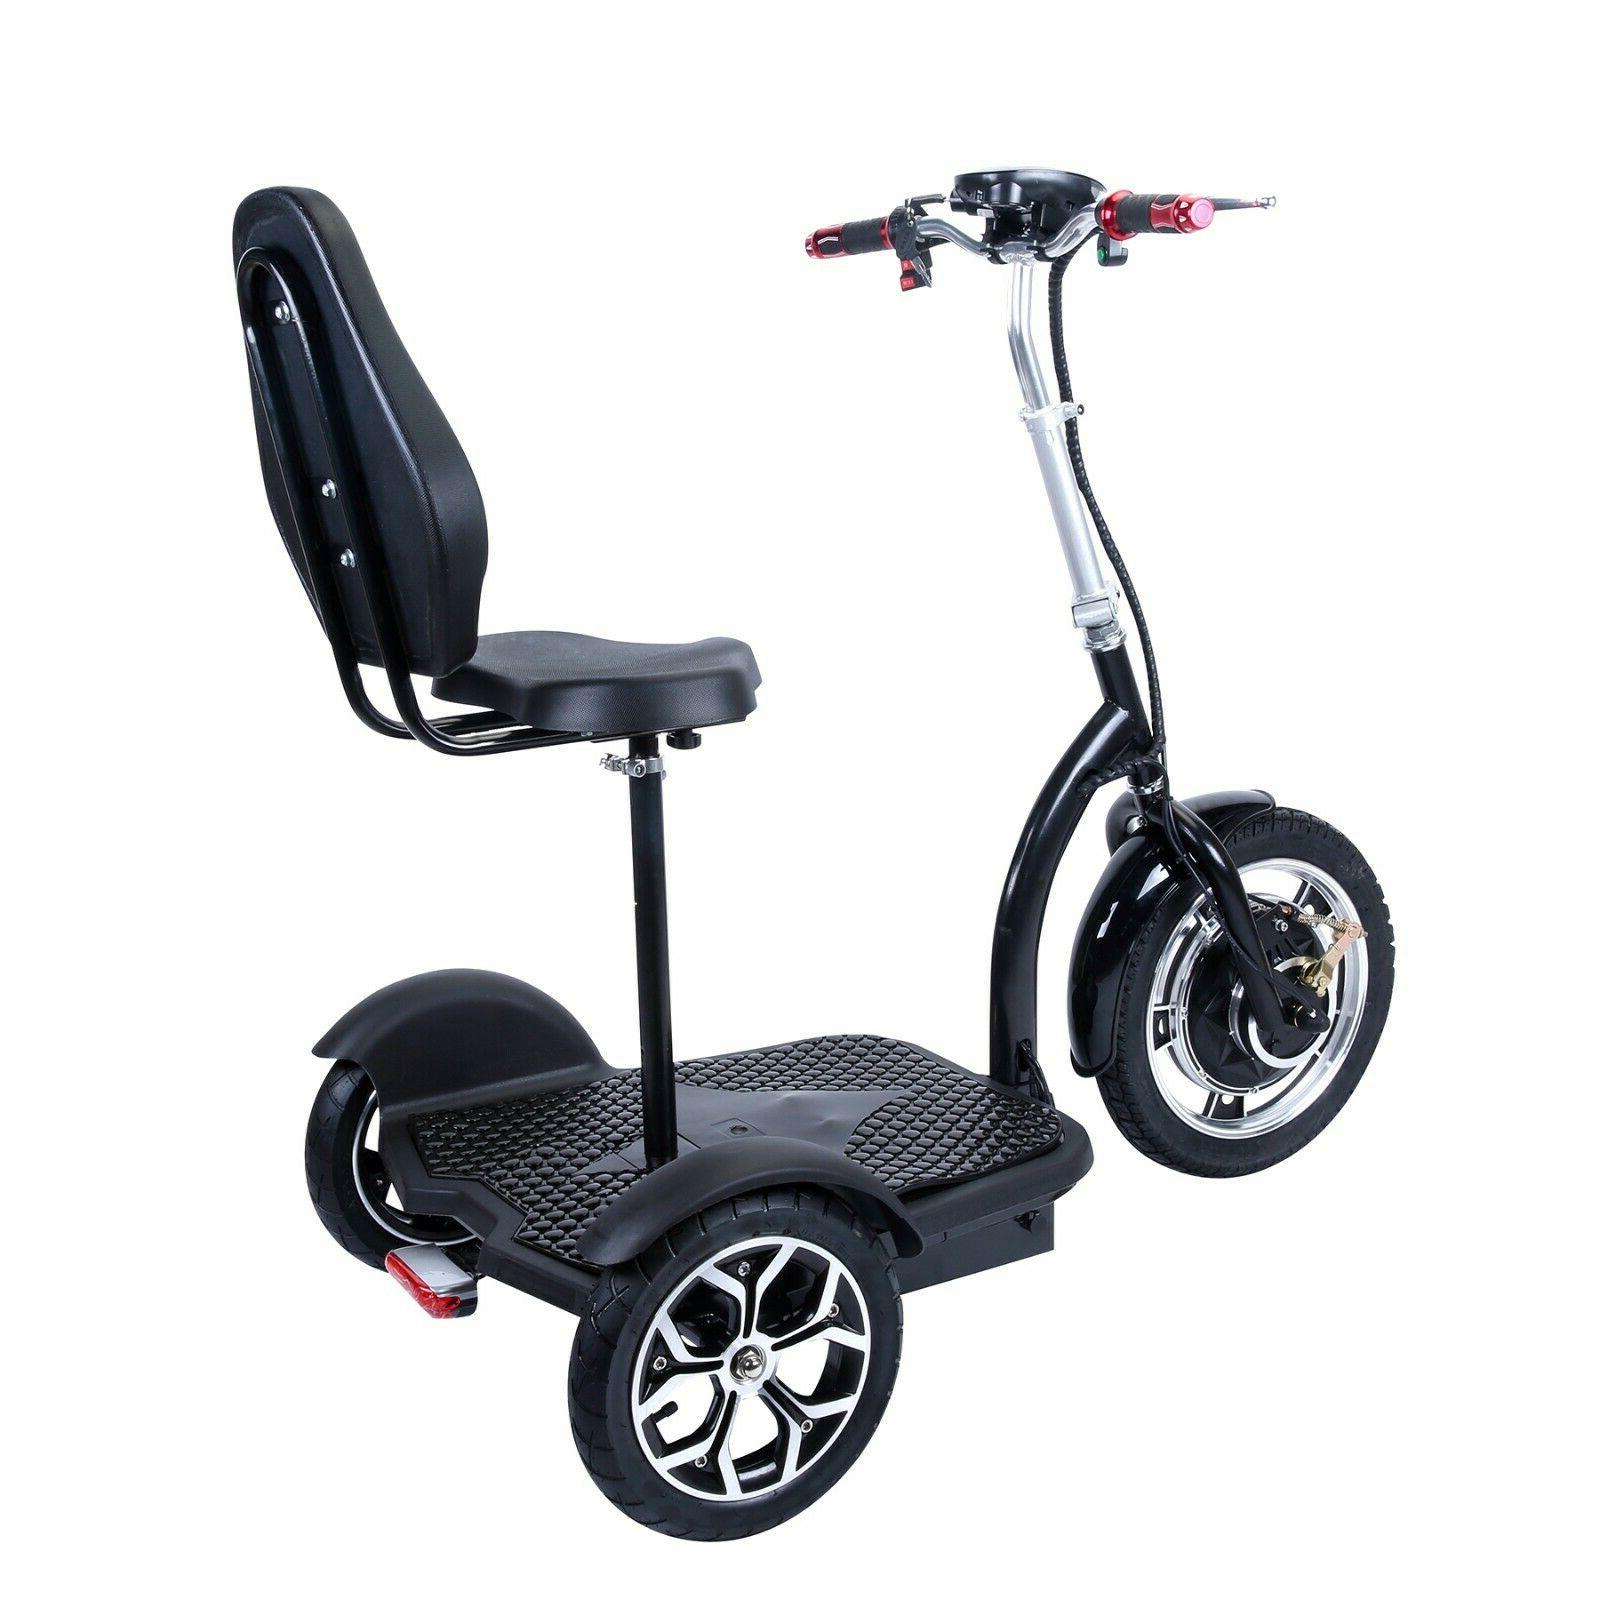 City Hopper 3-Speed Electric Mobility with 16-inch Front Wheel, Bru